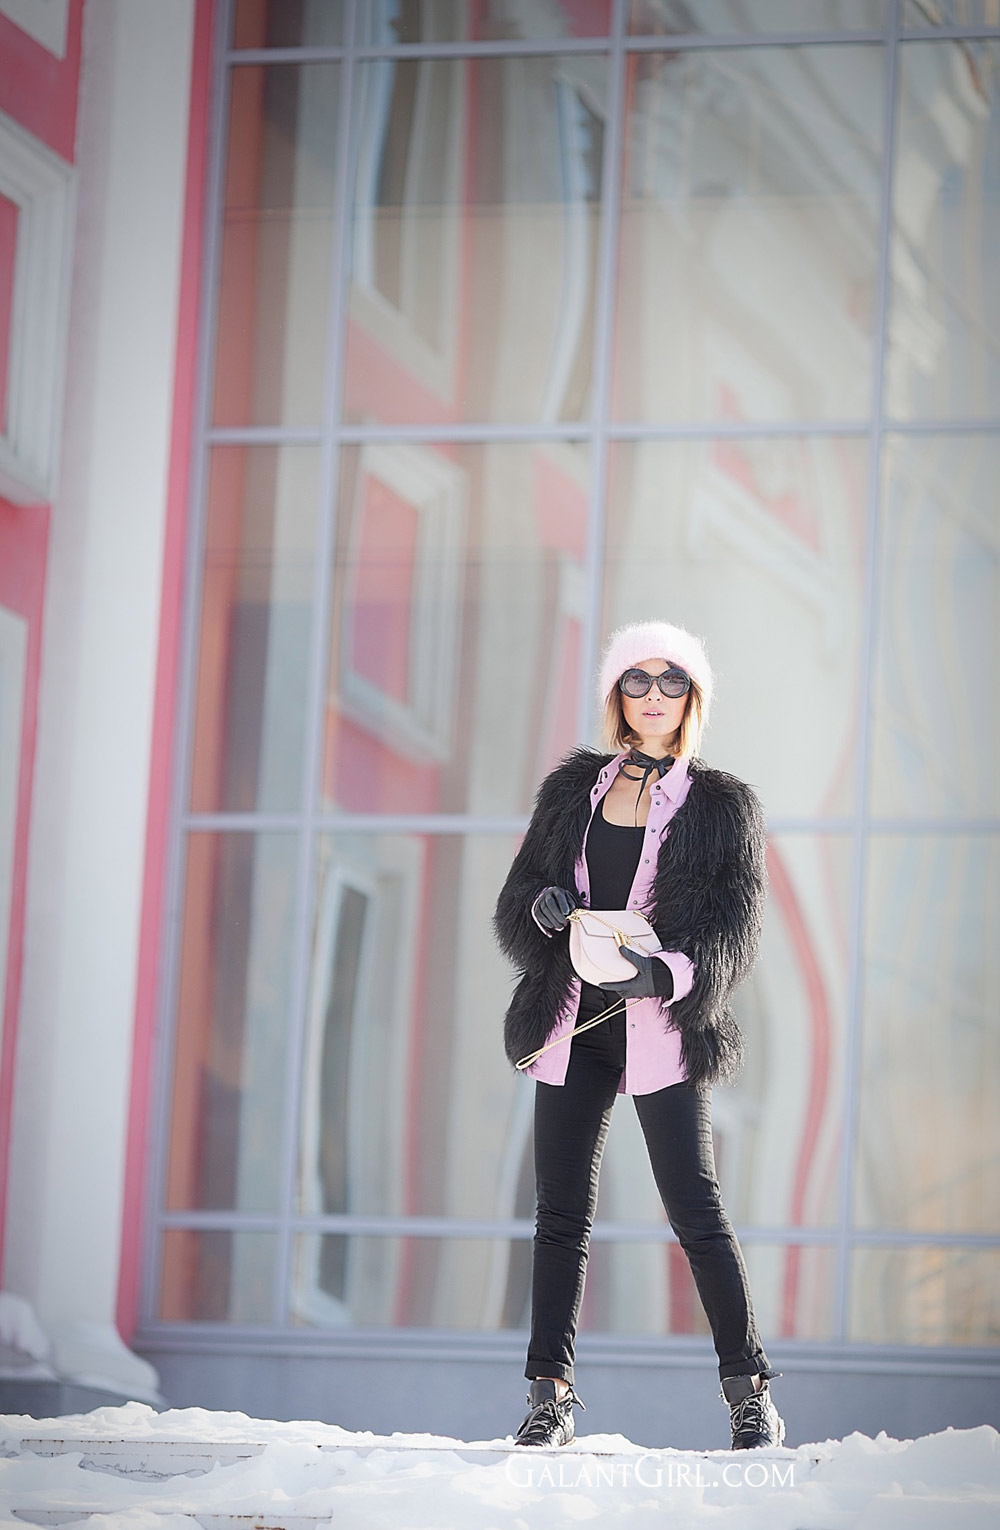 silk bow for nfaux fur coat outfit for really cold winter days, chloe drew bag in blush, cold weather outfits,eck